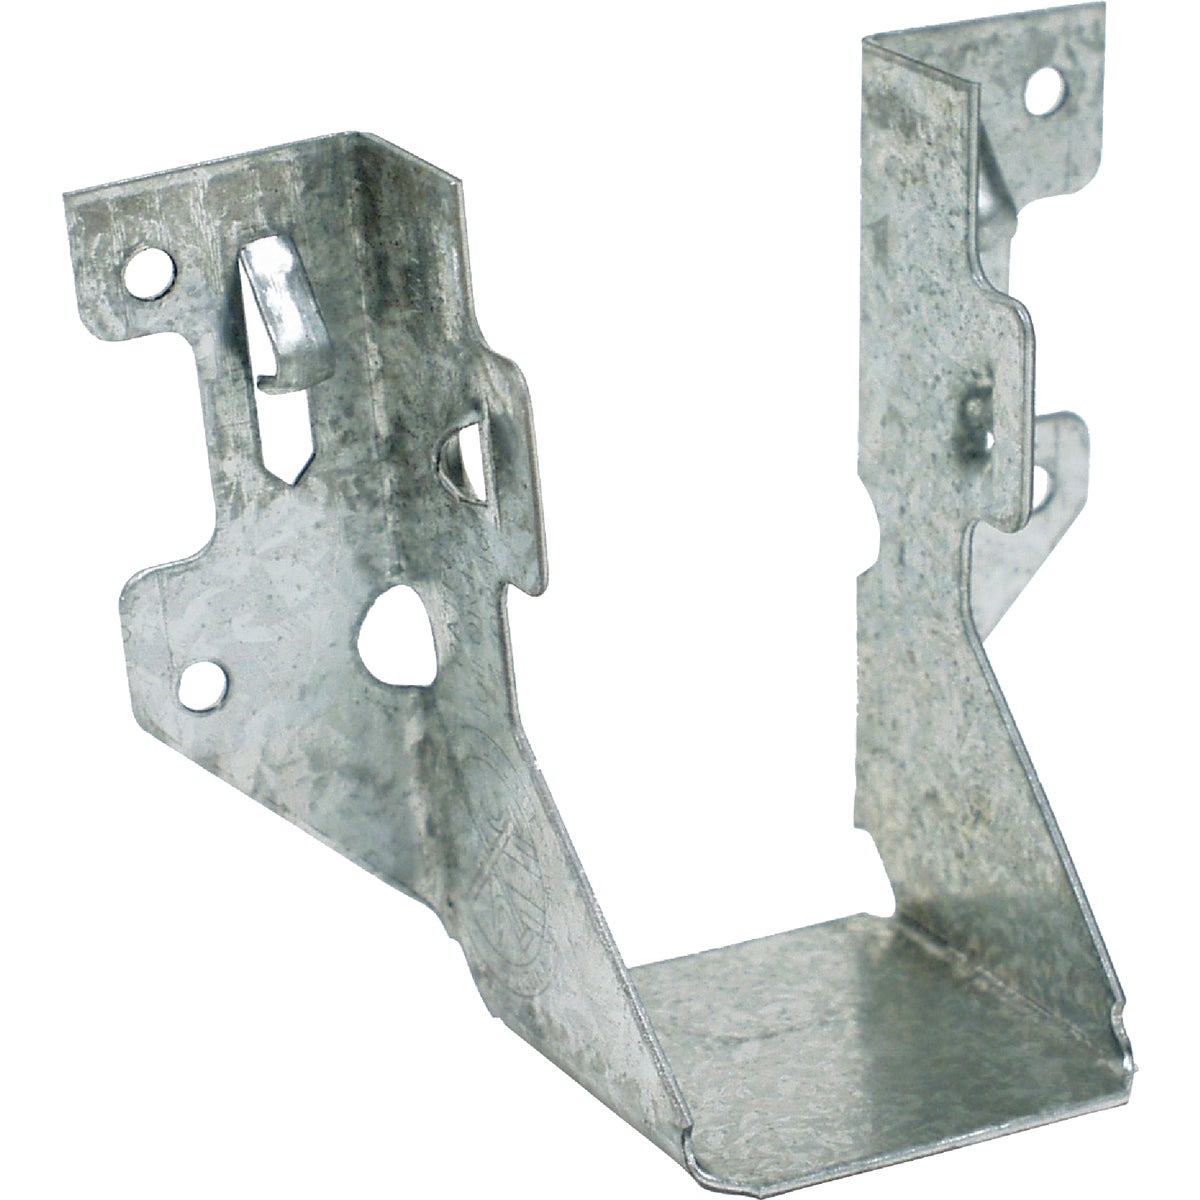 2X4 JOIST HANGER Z-MAX - LUS24Z by Simpson Strong Tie